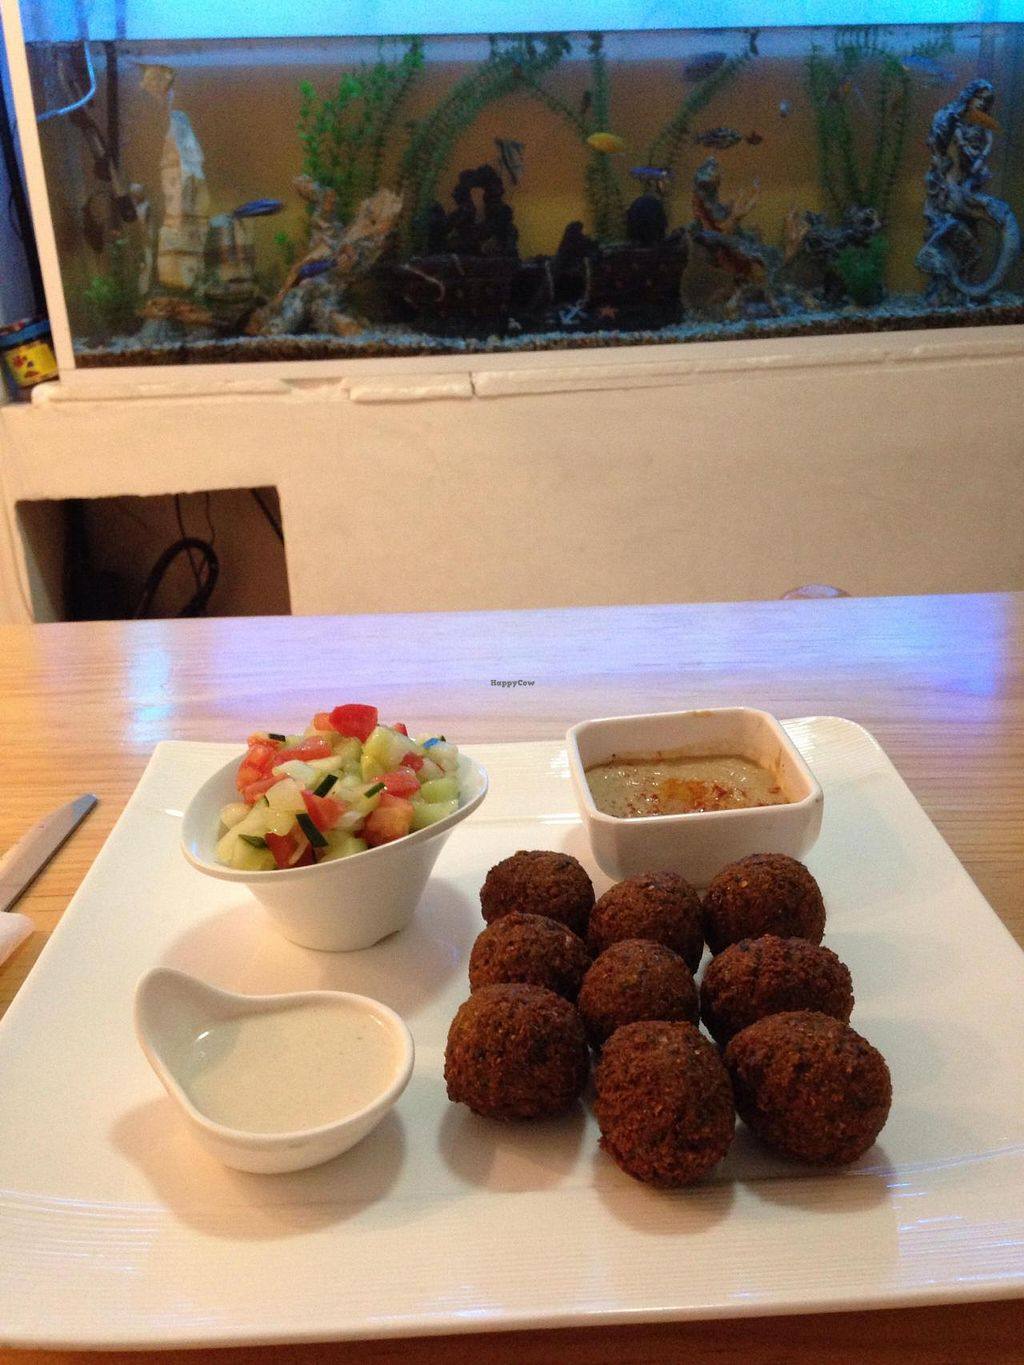 "Photo of Cafe Rimon  by <a href=""/members/profile/DynaMo"">DynaMo</a> <br/>falafel plate  <br/> July 21, 2015  - <a href='/contact/abuse/image/60885/110369'>Report</a>"